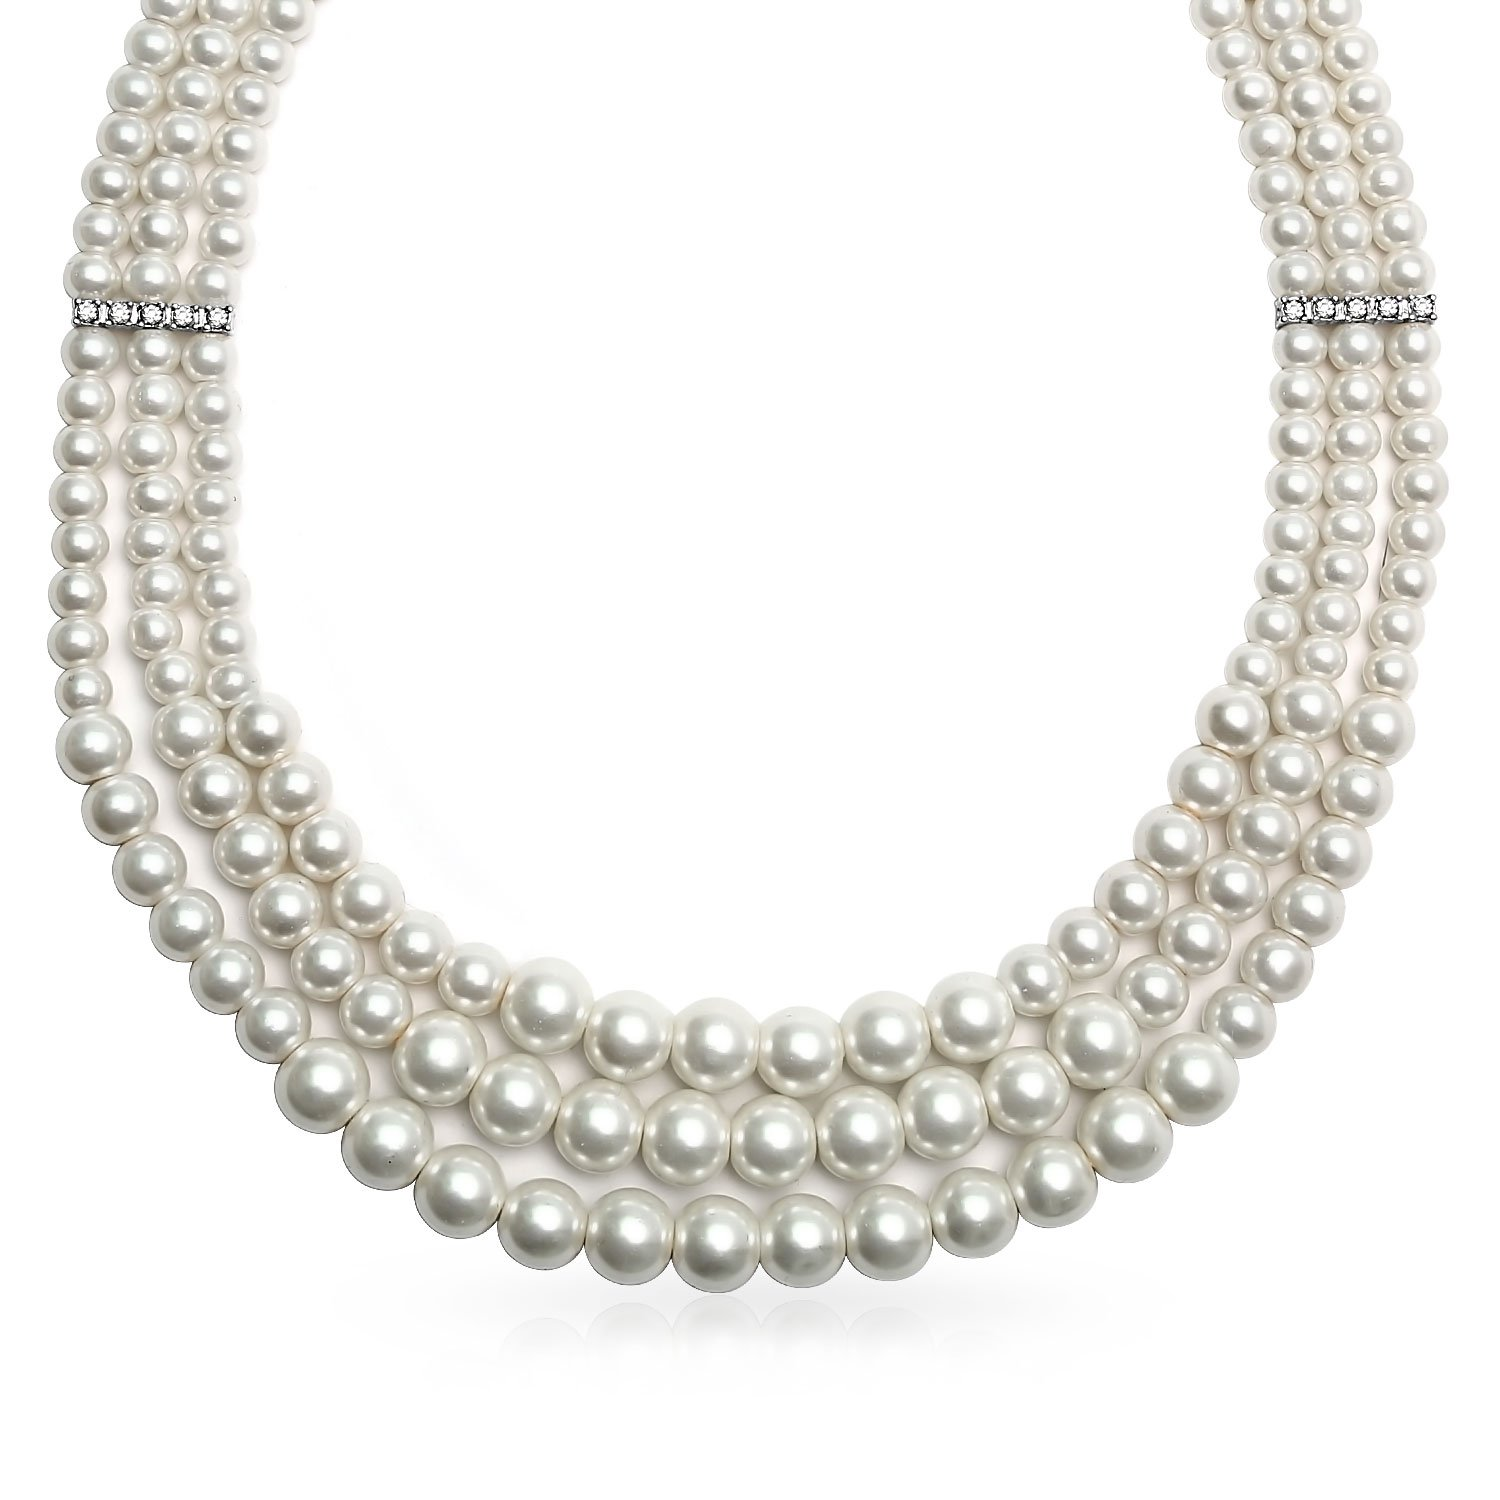 Bling Jewelry 3 Strand Simulated White Pearl Rhodium Plated Collar Necklace 18 Inches GRY-N14618